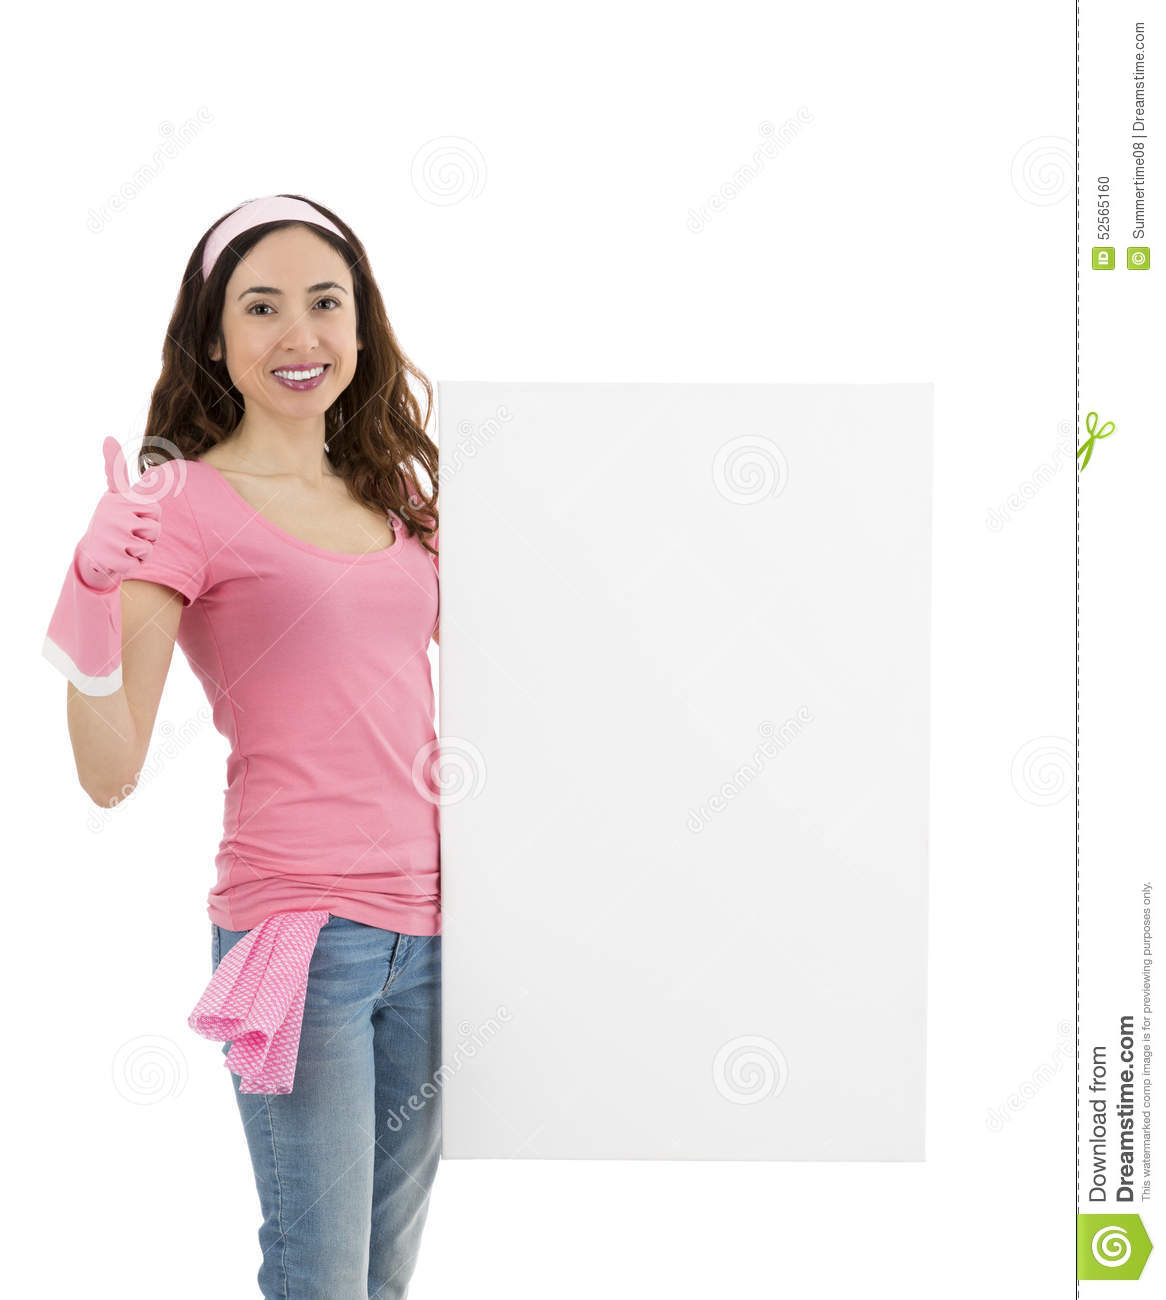 cleaning w an advertising poster and giving thumbs up cleaning w an advertising poster and giving thumbs up